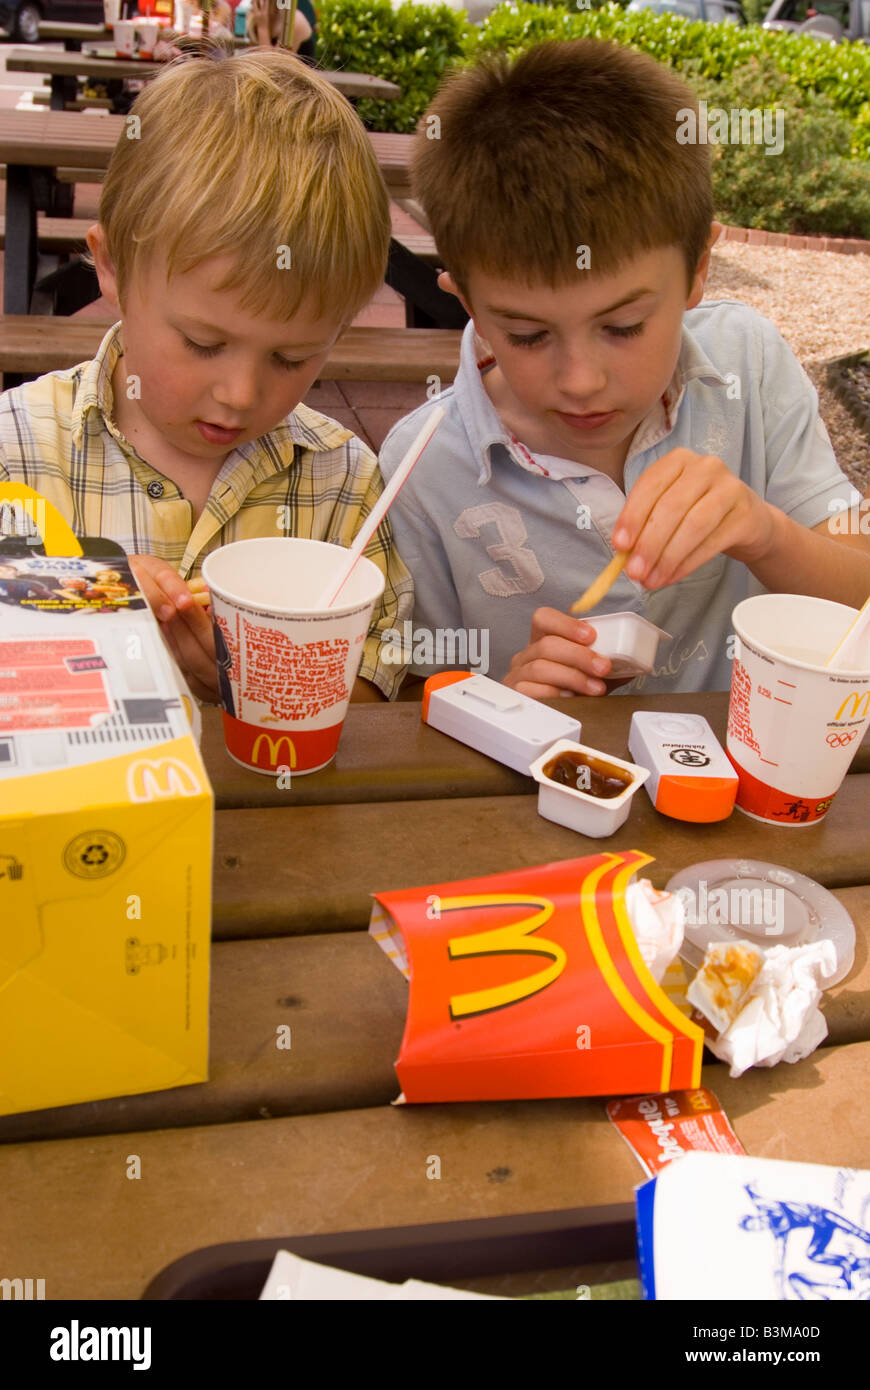 Two boys eating Happy Meals at Mcdonald's - Stock Image